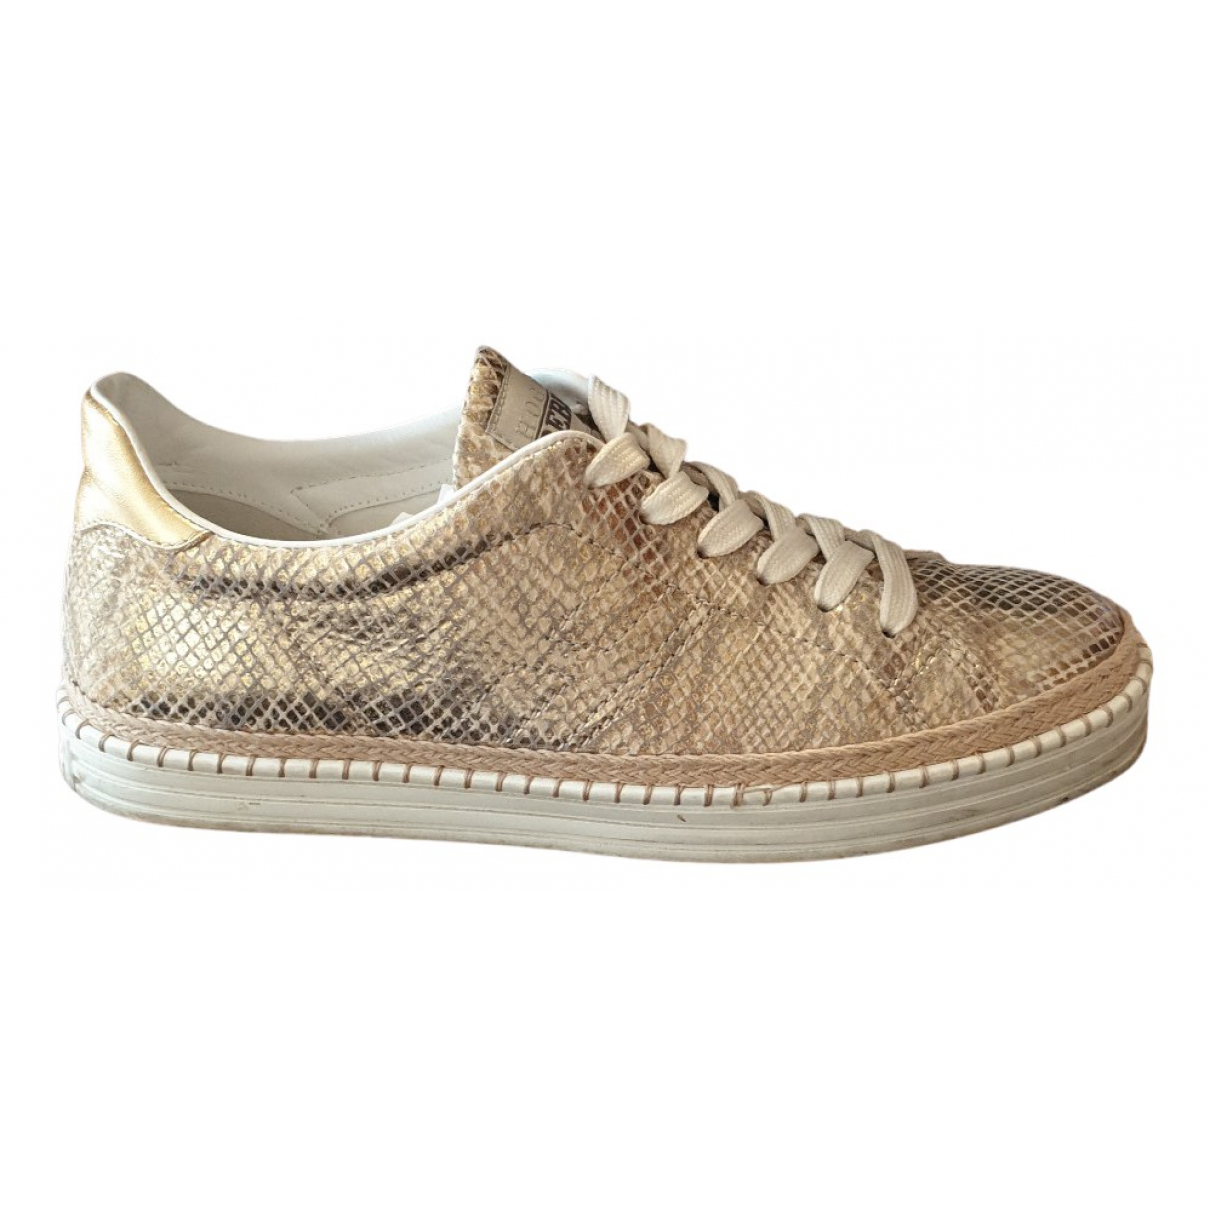 Hogan N Gold Leather Trainers for Women 38 EU